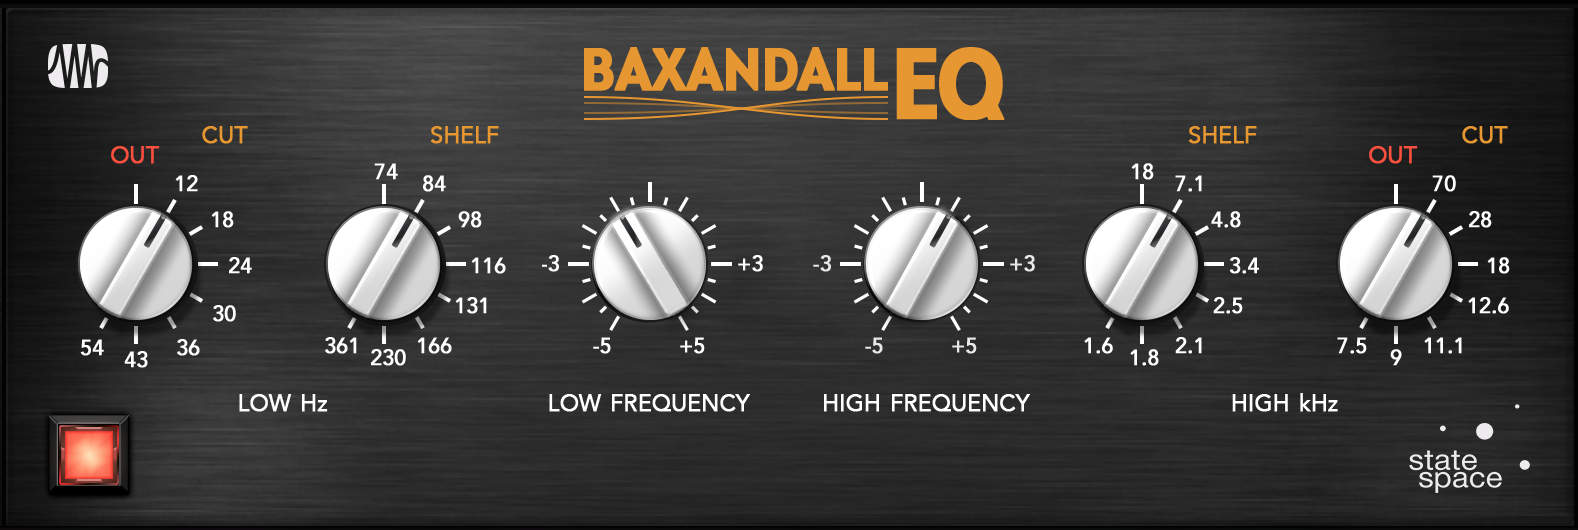 PreSonus Baxandall EQ Fat Channel Plug-in [Online Code] - Vst Eq Plug In